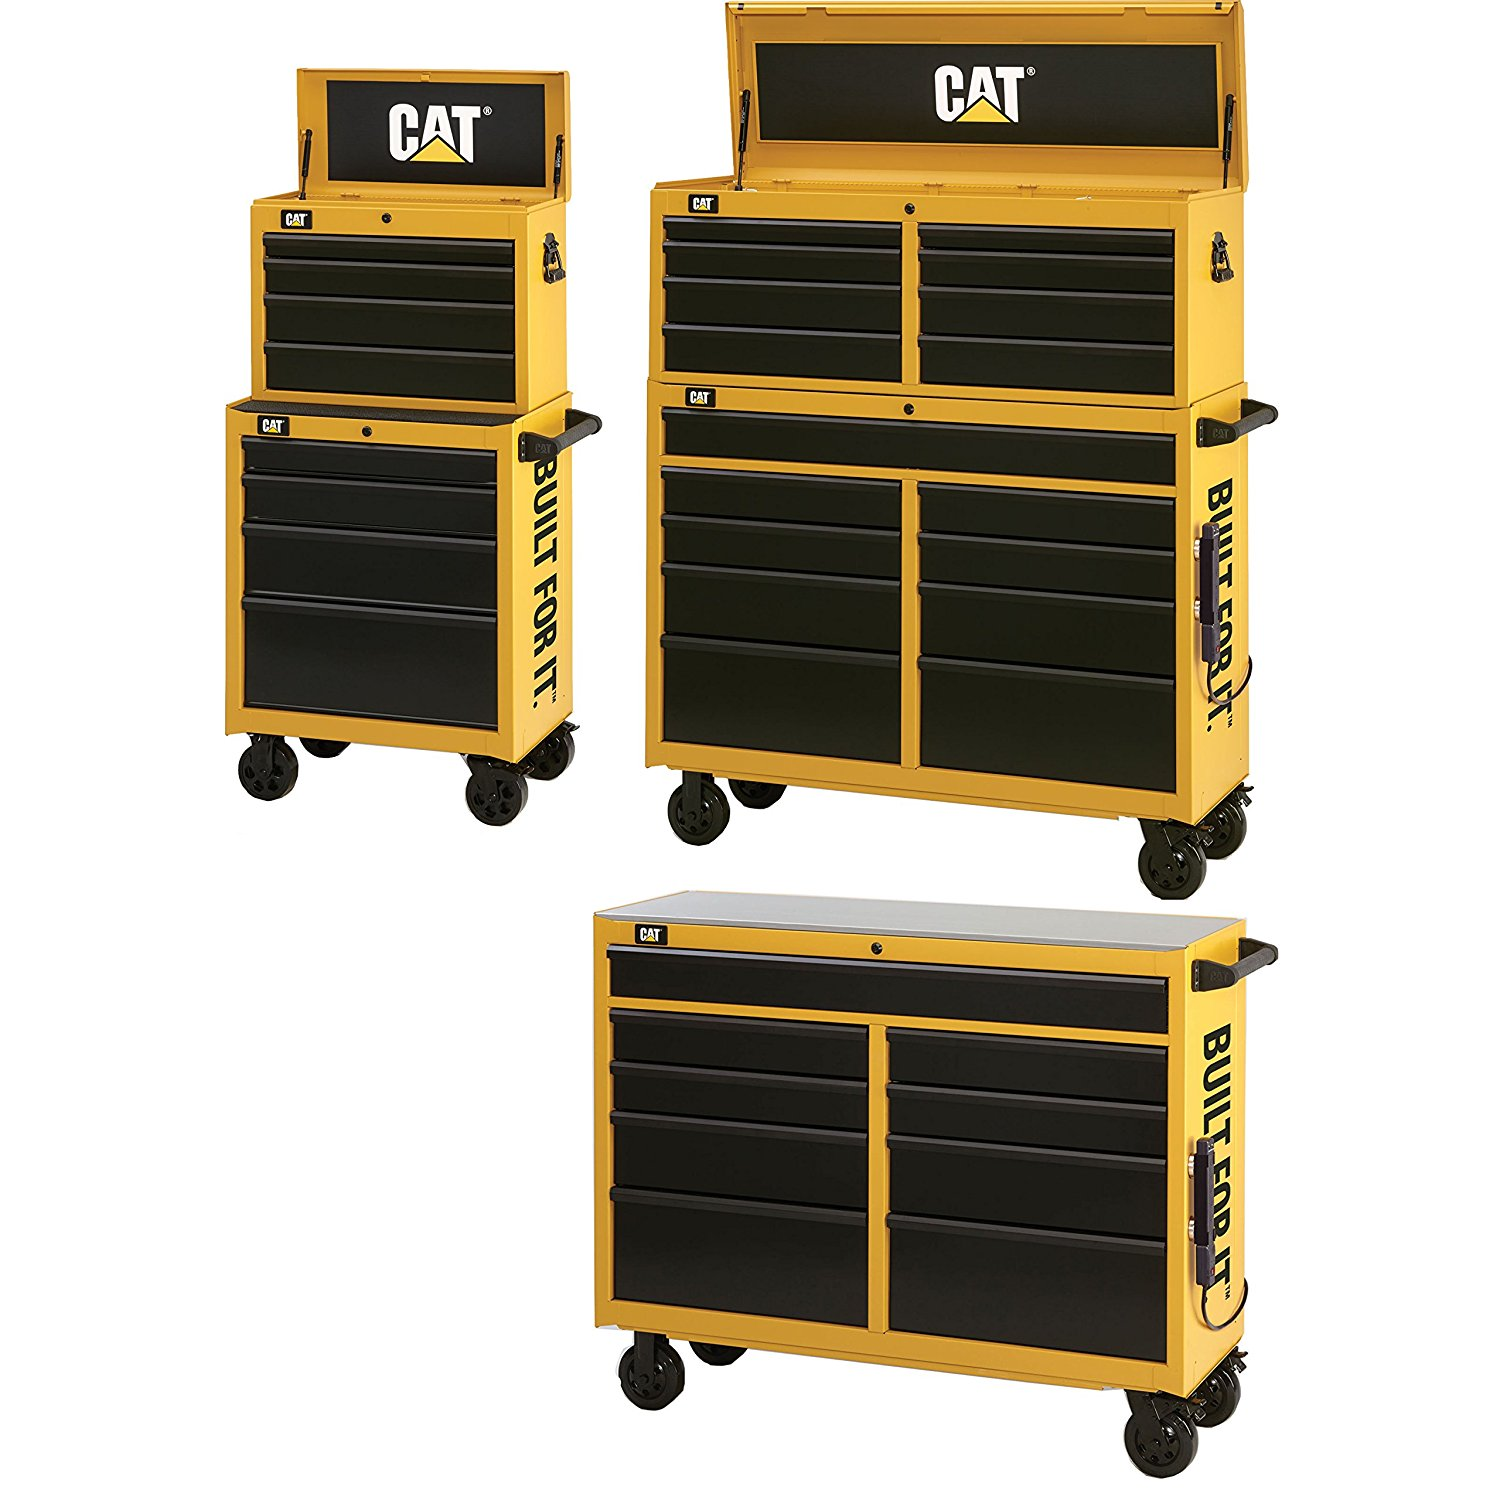 """Caterpillar CAT-IND5208 52"""" Chest/Cabinet, WS with CAT-IND2604 26"""" Chest/Cabinet"""